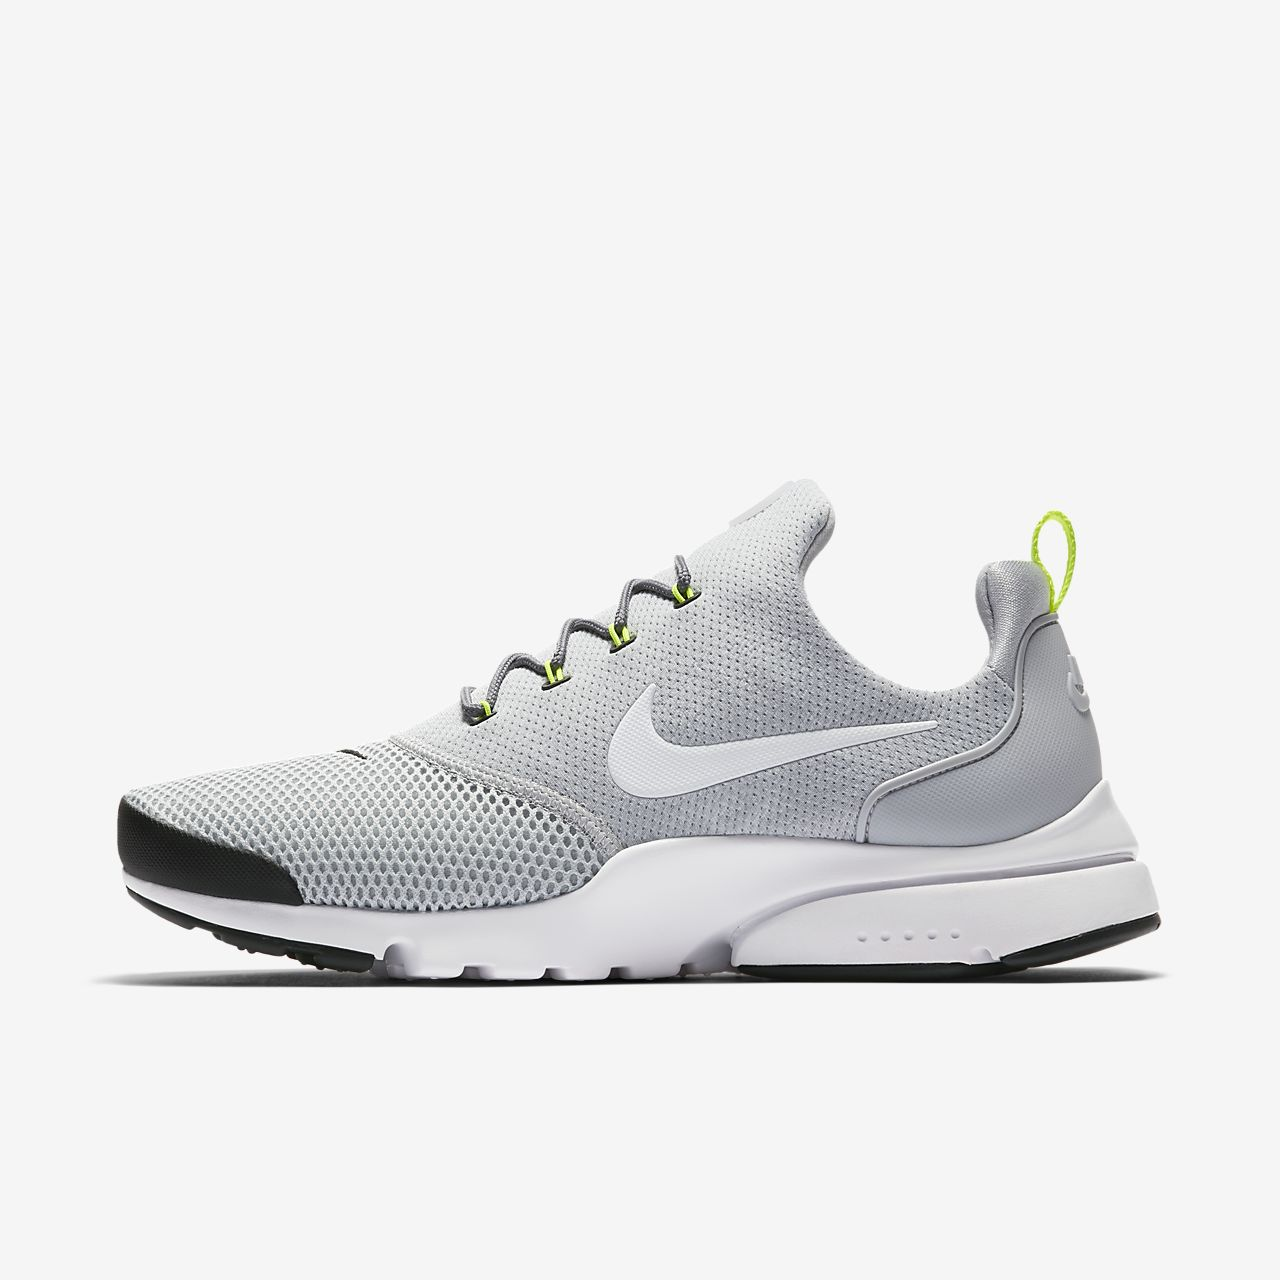 ... Chaussure Nike Presto Fly pour Homme